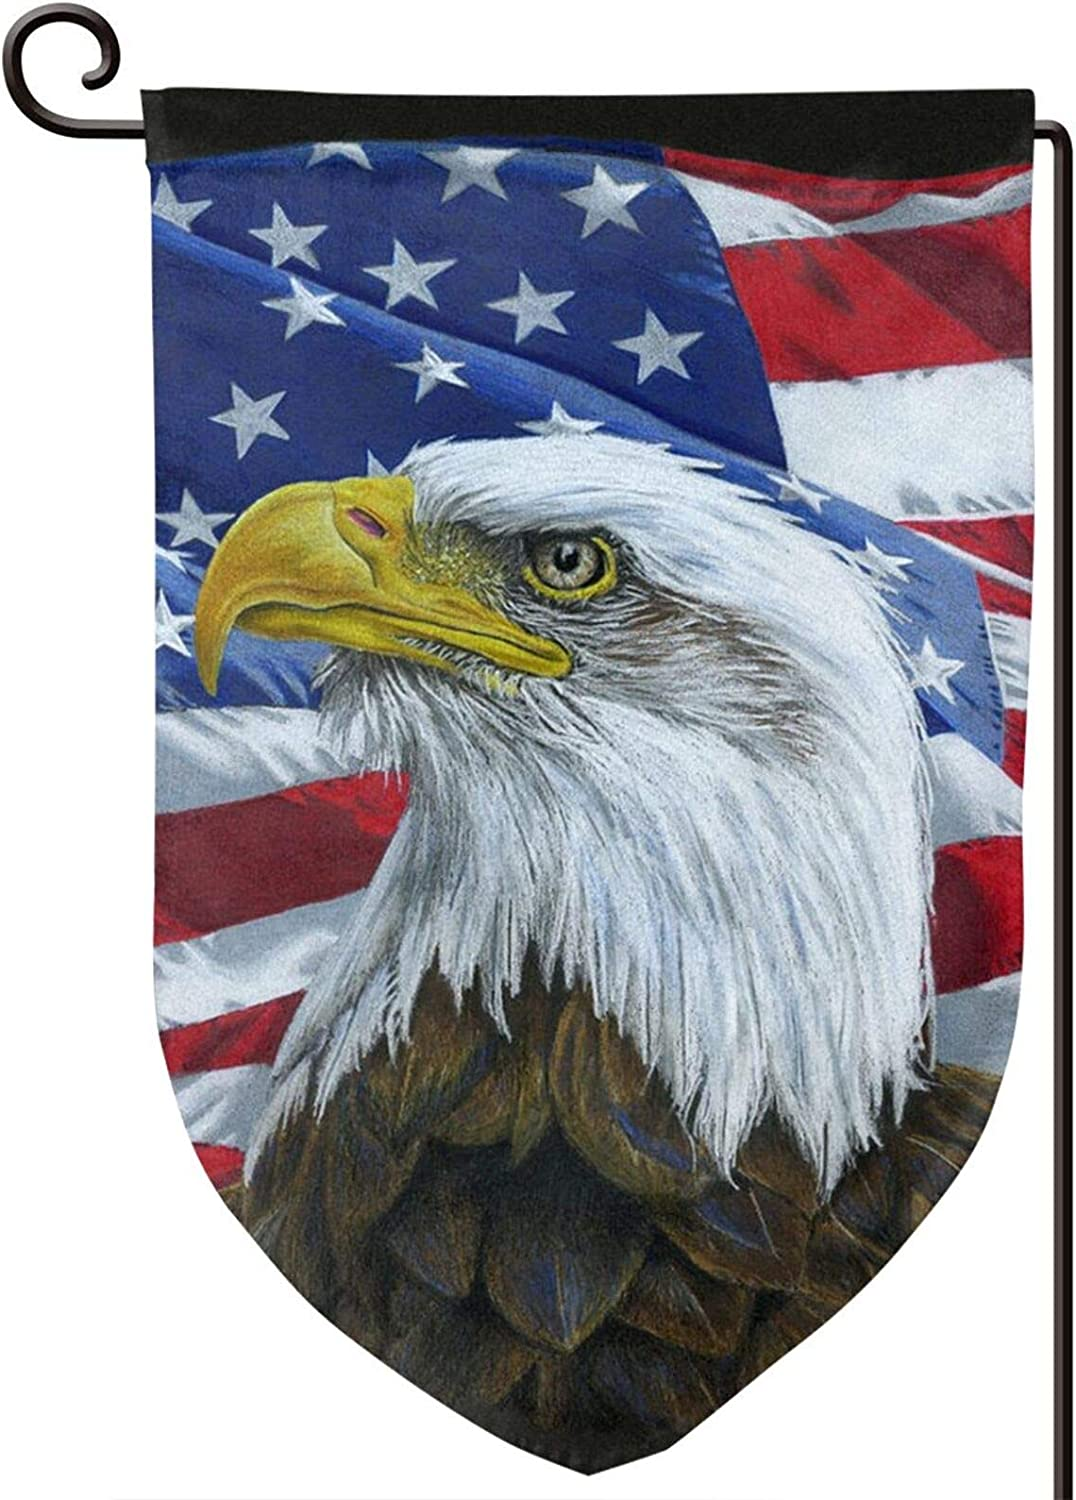 YIEASY Home Garden Flags, American National Flag and Eagle Garden Flags,Novelty Flag Banners 12.5